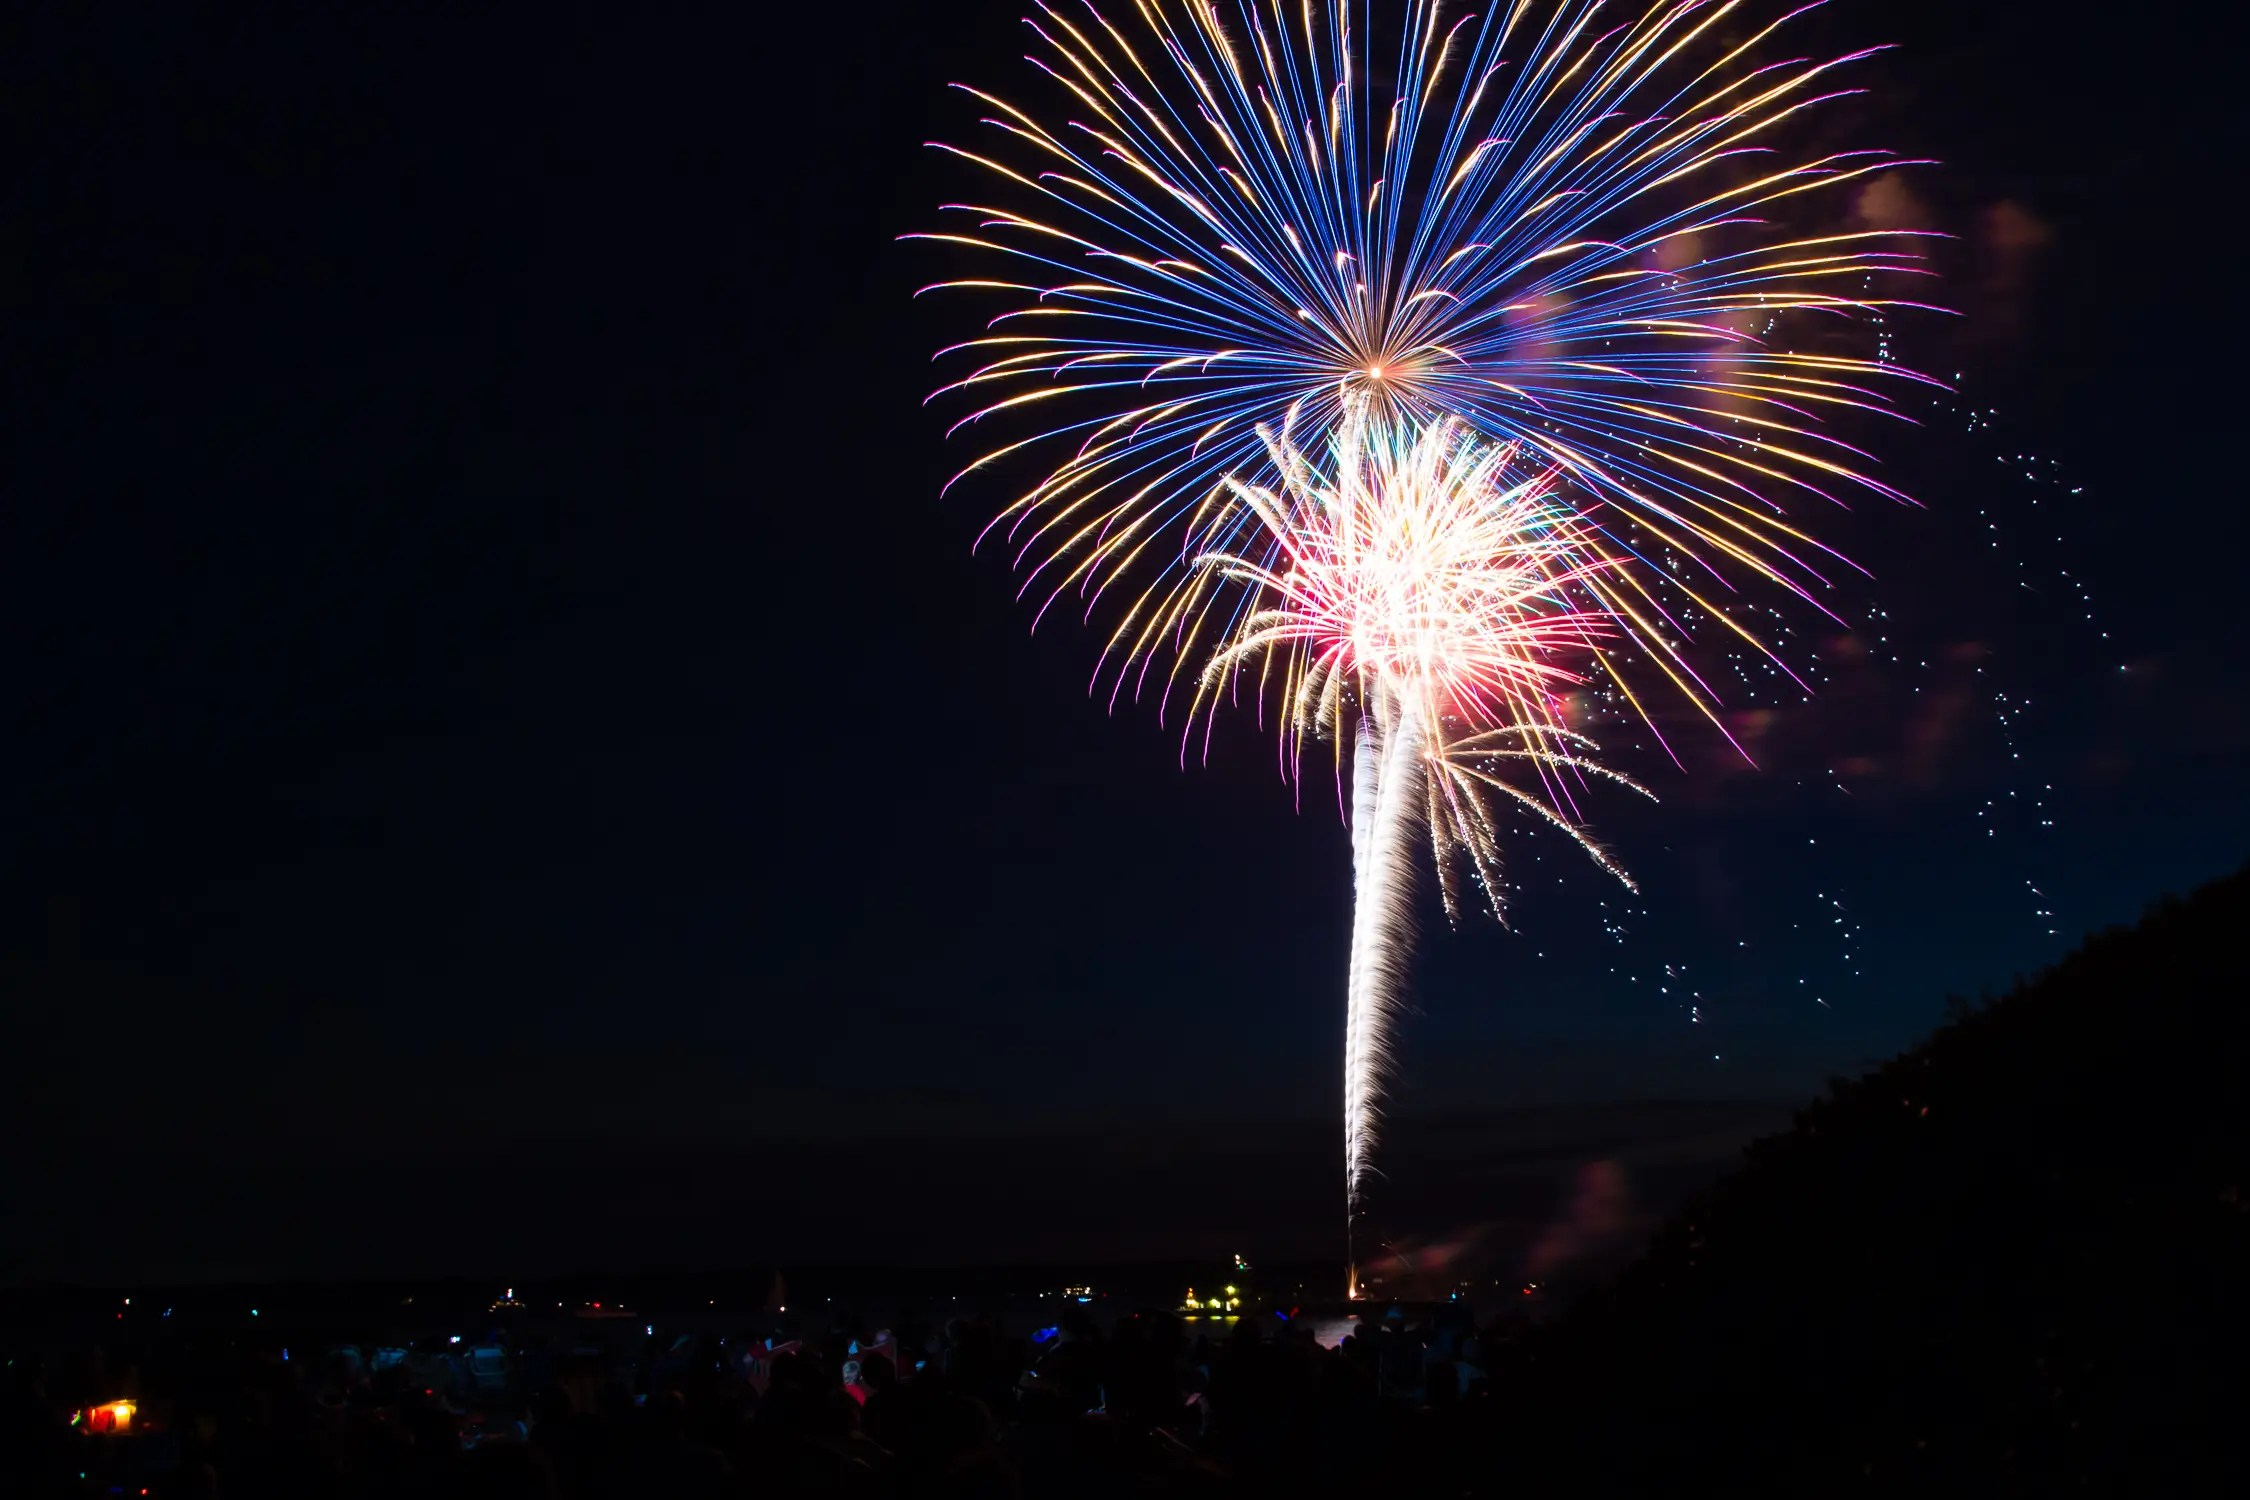 Slow your shutter down to create beautiful fireworks shots.